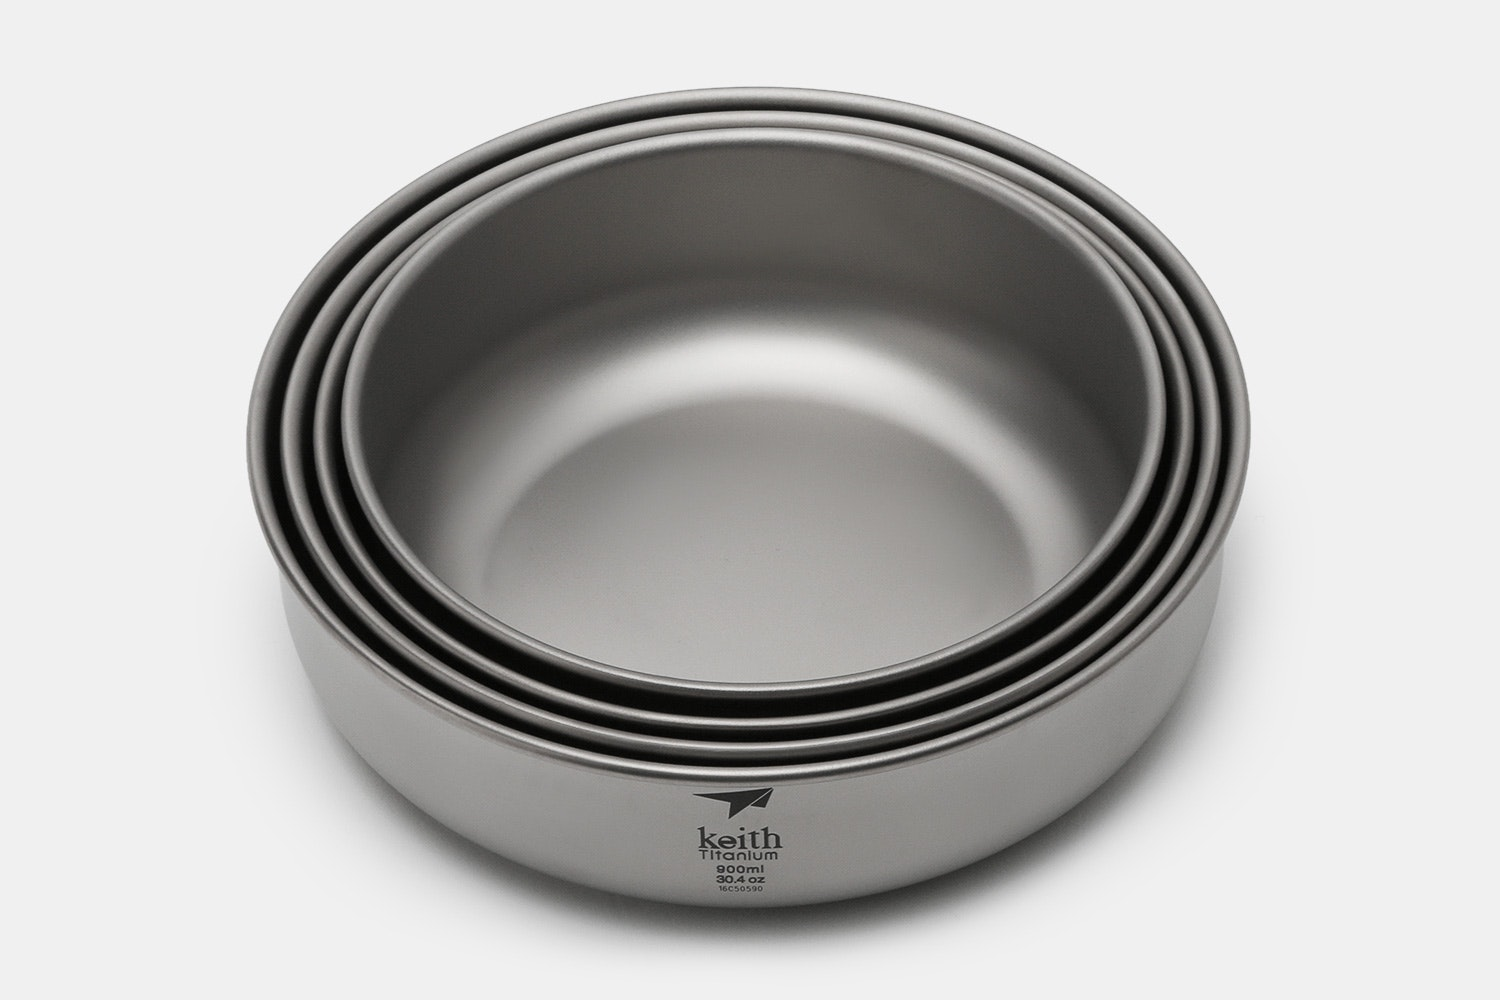 Keith Titanium Ti5376 4-Piece Bowl Set